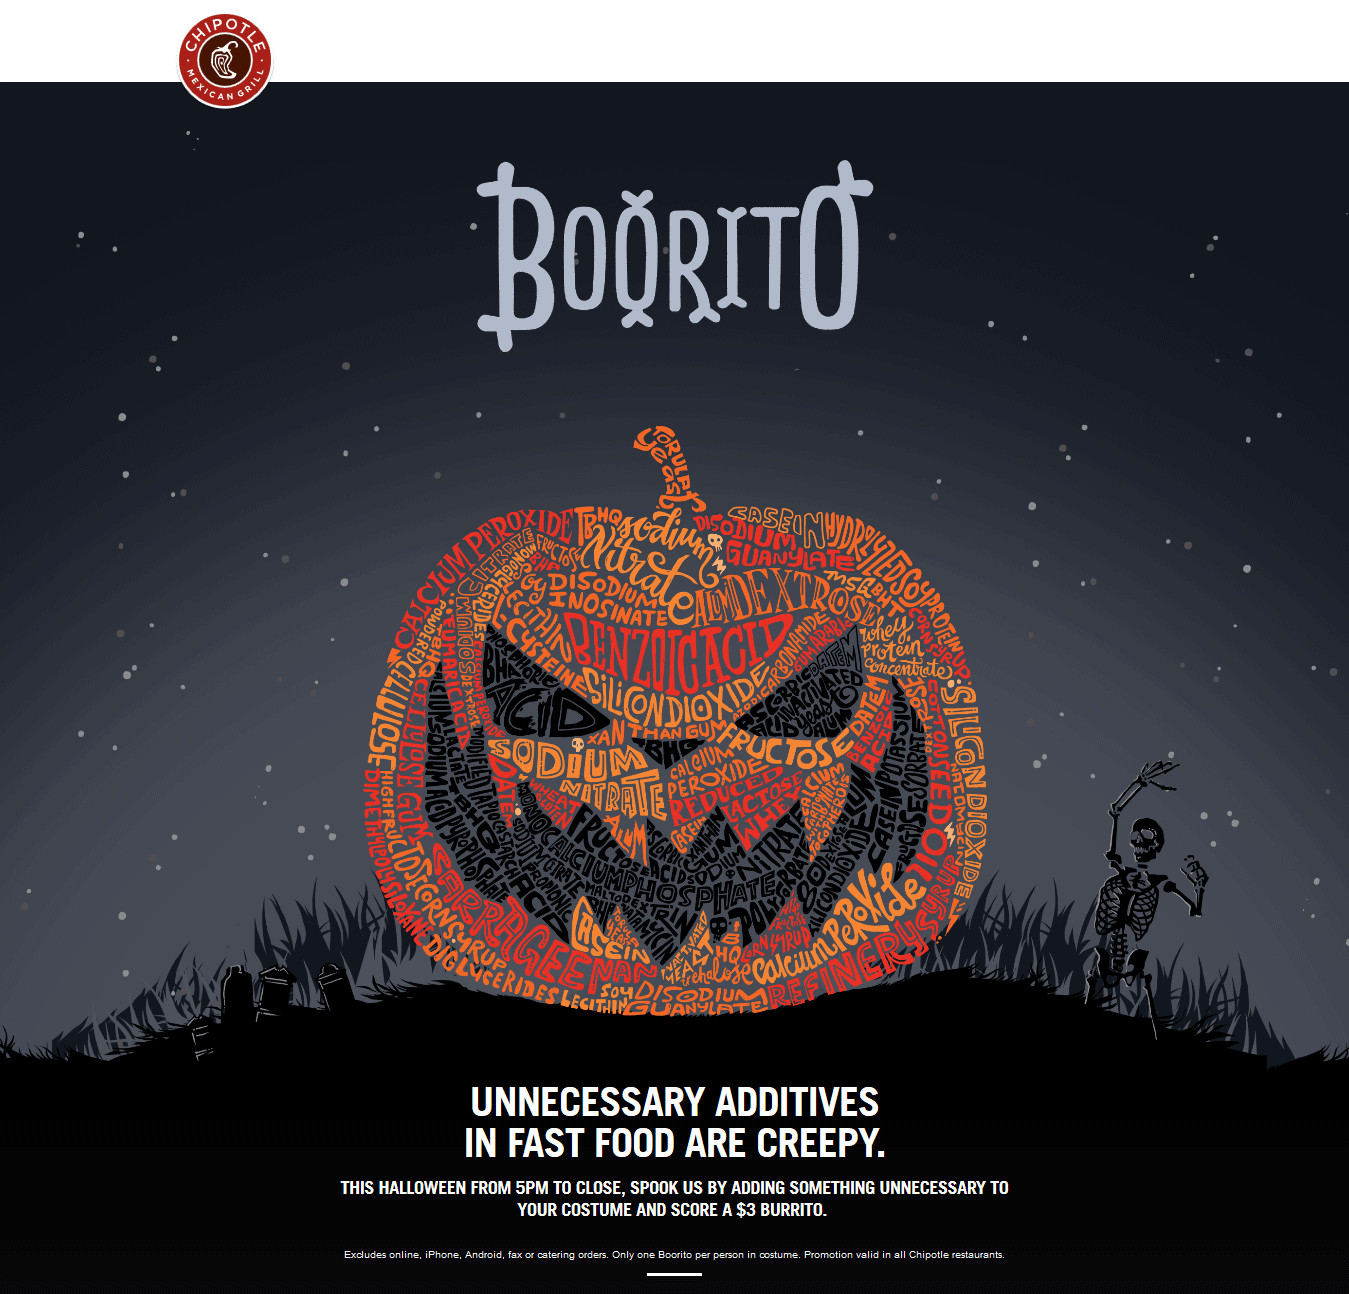 $3 Burritos At Chipotle On Halloween  Chipotle Coupons $3 burritos in costume Halloween at